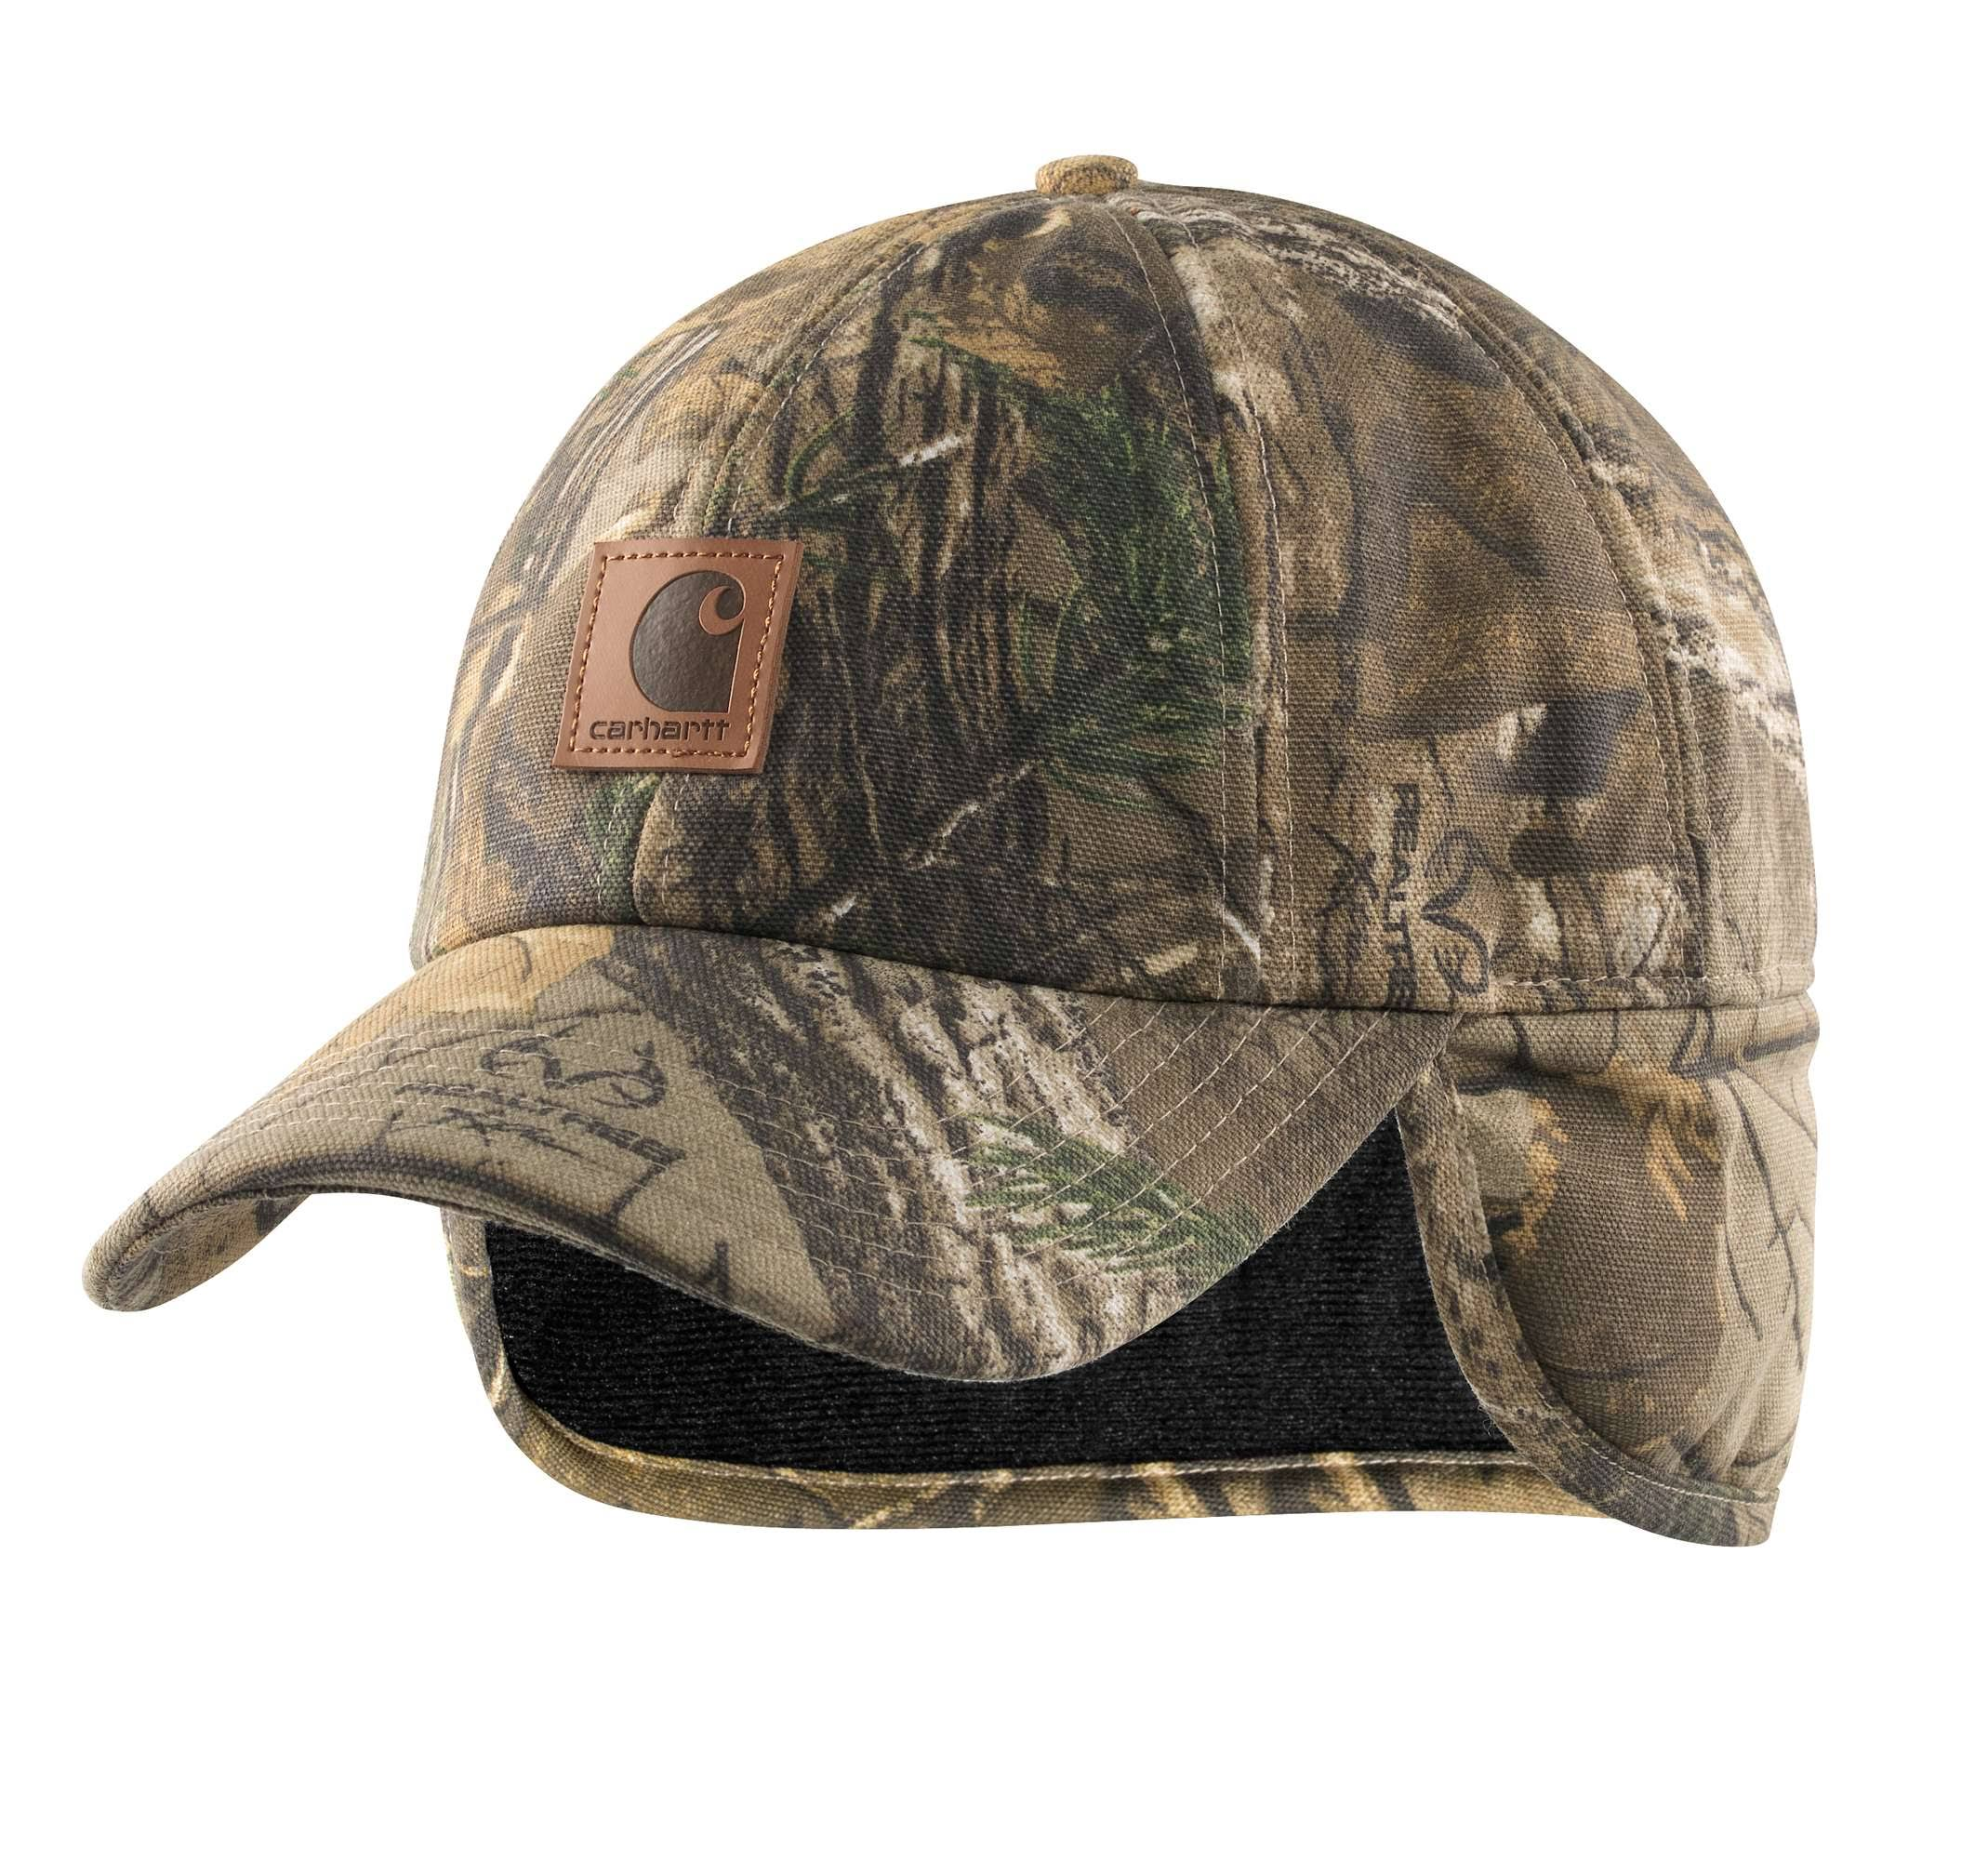 Carhartt Men's Camo Ear Flap Cap - Realtree Xtra - M/L